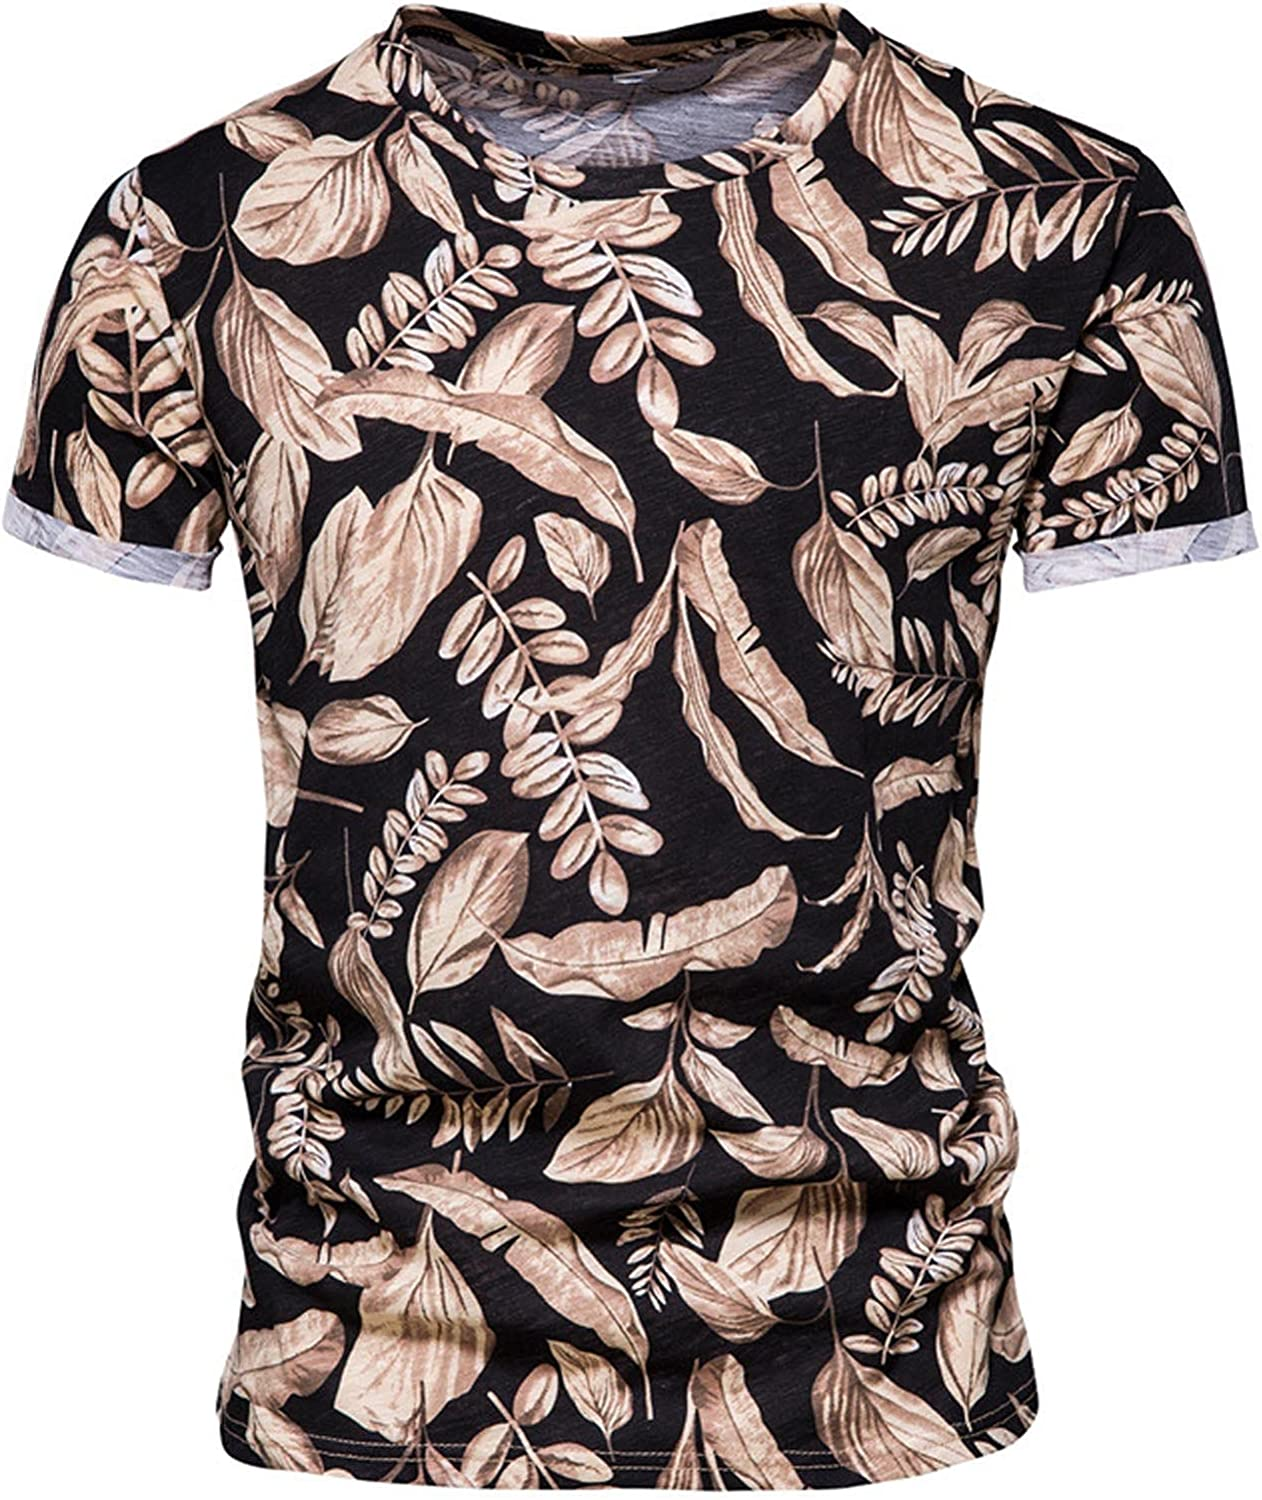 Yihaojia Men Blouse Mens Summer Beach All Over Printed Short Sleeve T-Shirts Workout Sports Tee Shirt